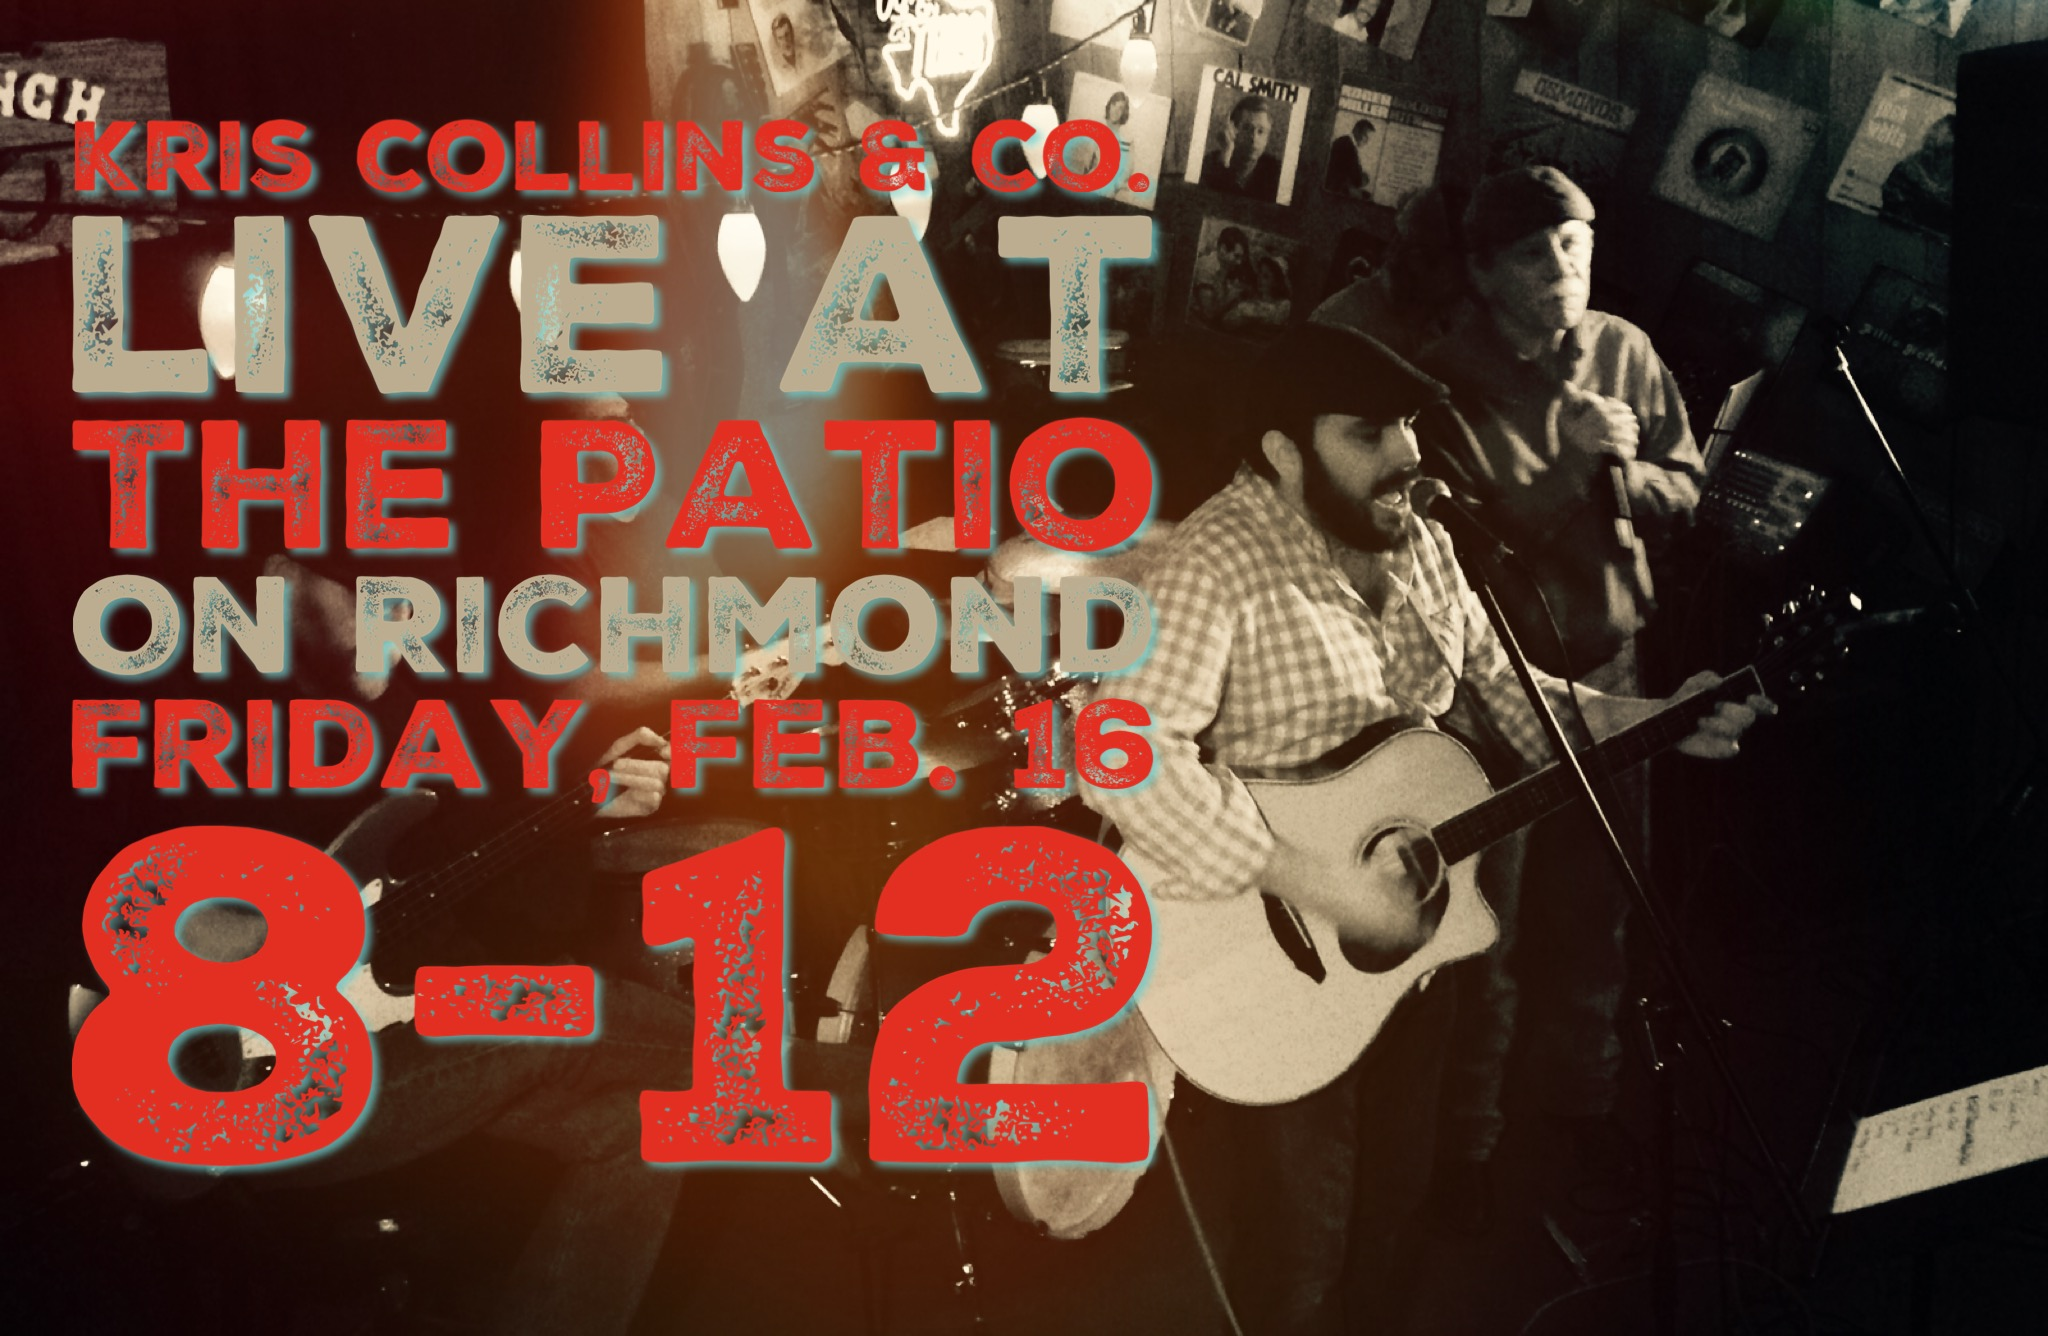 We're glad to be back at the Patio on Richmond this Friday night! We'll start around 8. Hope to see you there!